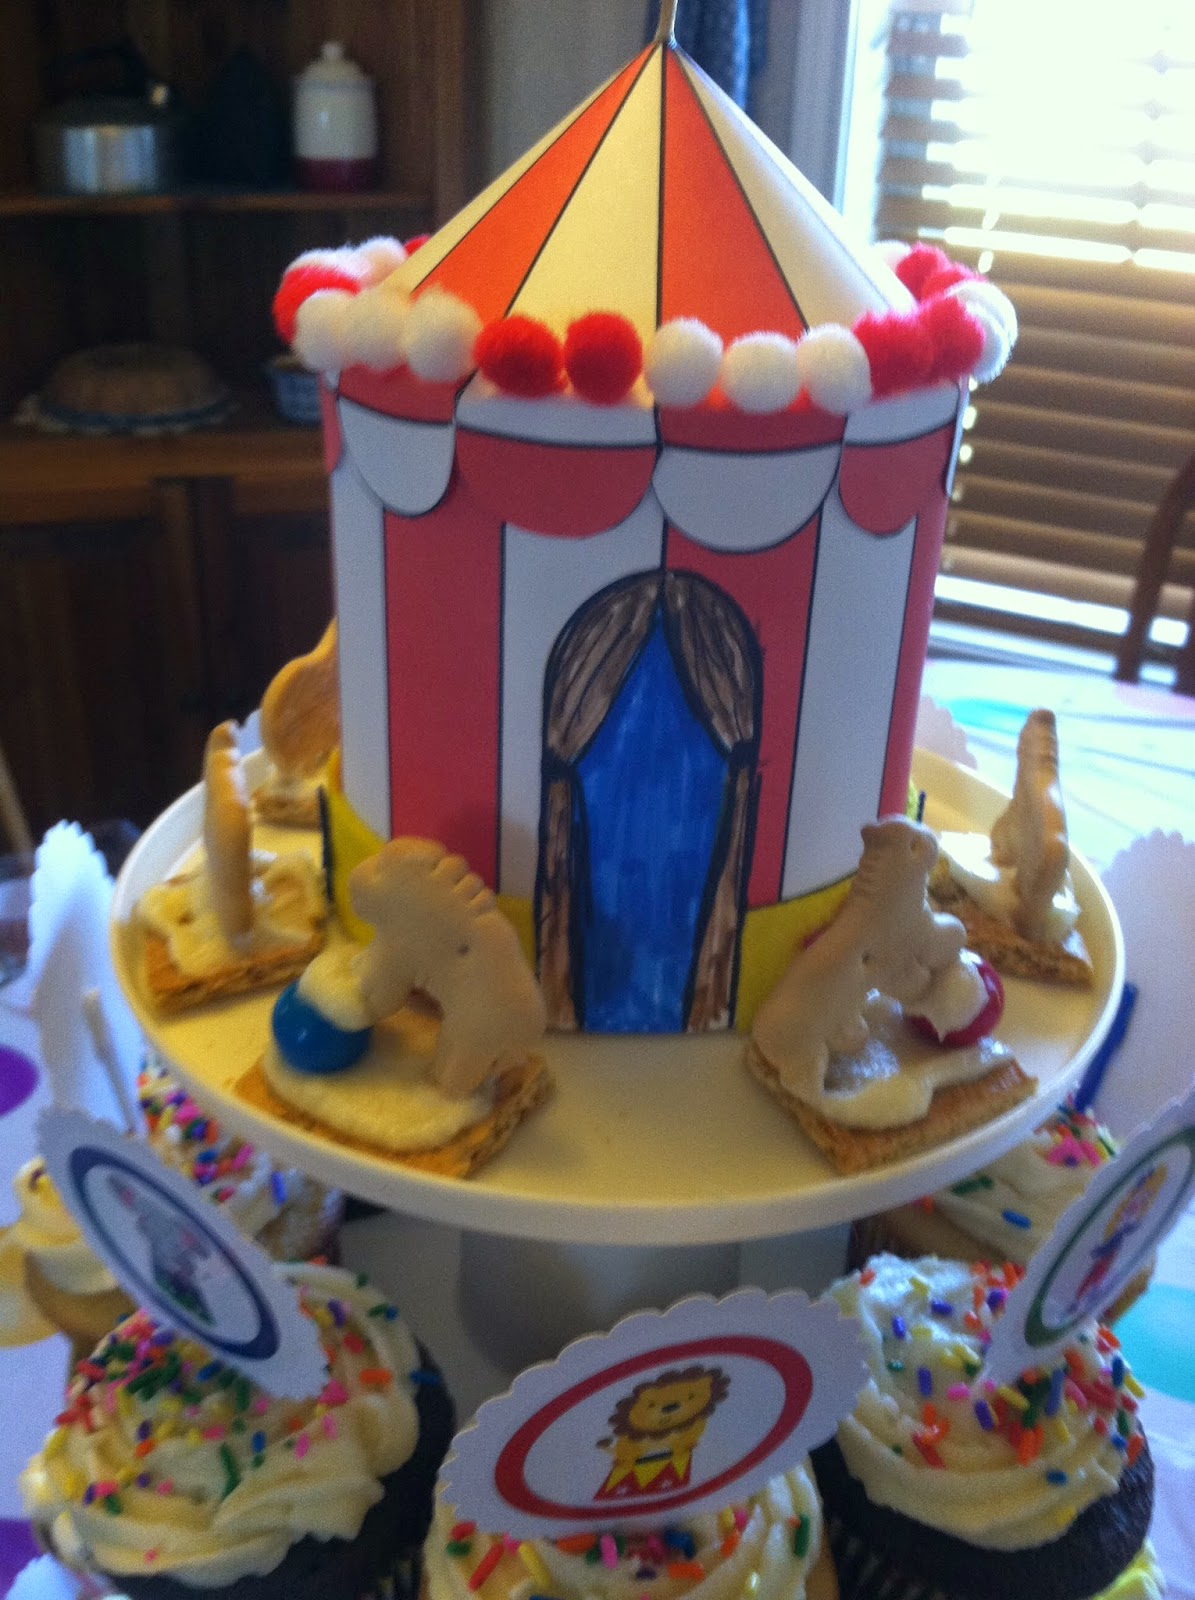 Hereu0027s my step-by-step DIY with directions and photos for the Circus  Big-Top  Tent. This centerpiece can easily ... & Ms. Nancyu0027s Nook : Circus